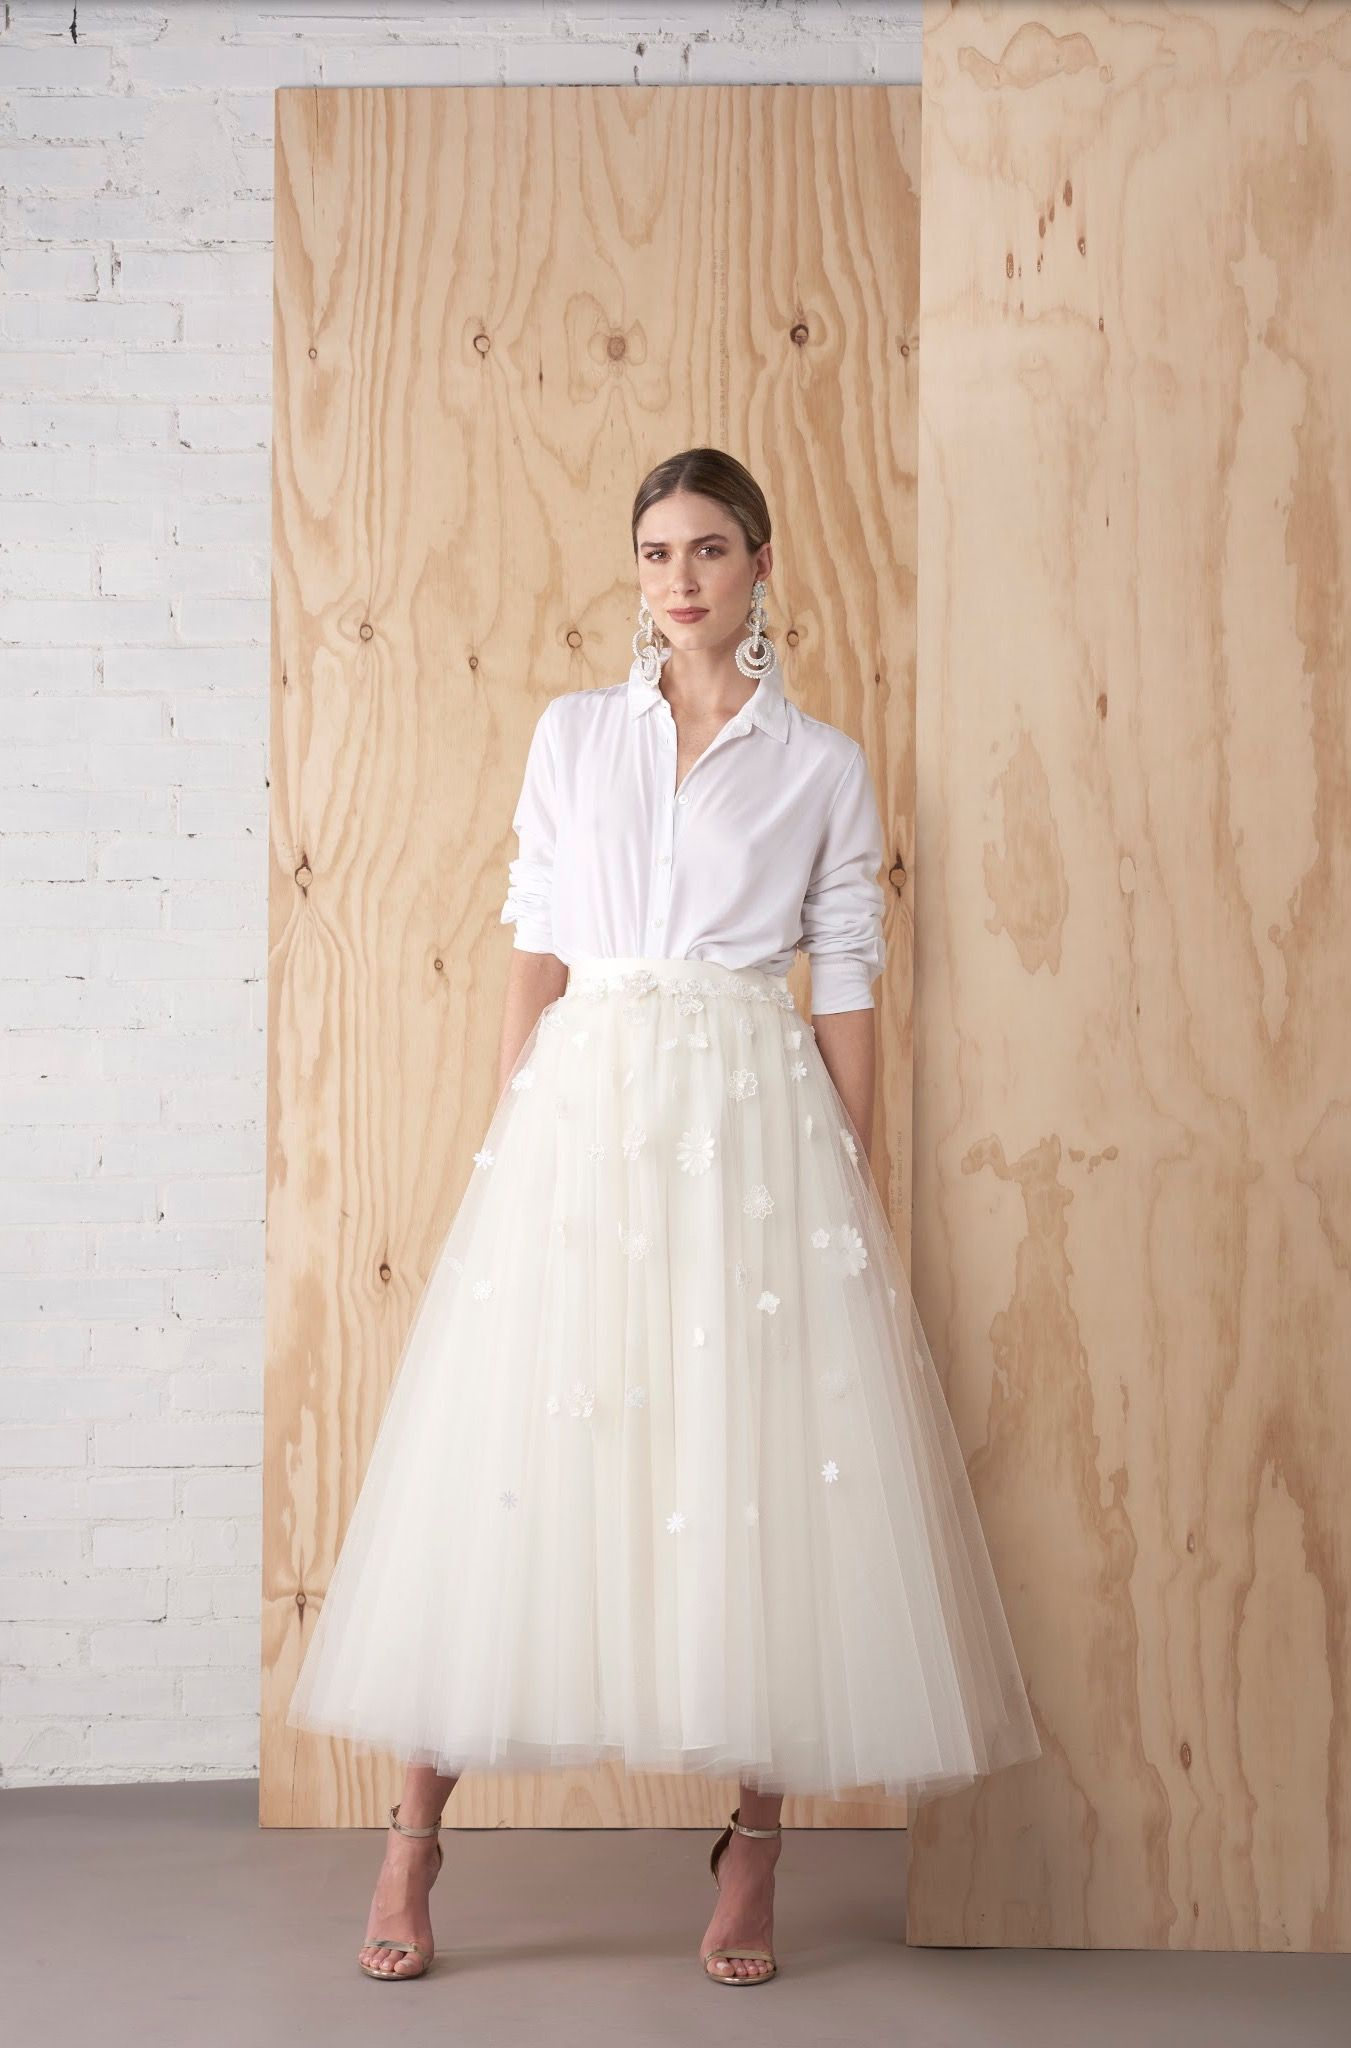 New Ways To Say I Do Bridal Modern Tulle White Tulle Skirt Outfit Tulle Skirts Outfit Wedding Dress Suit [ 2048 x 1351 Pixel ]